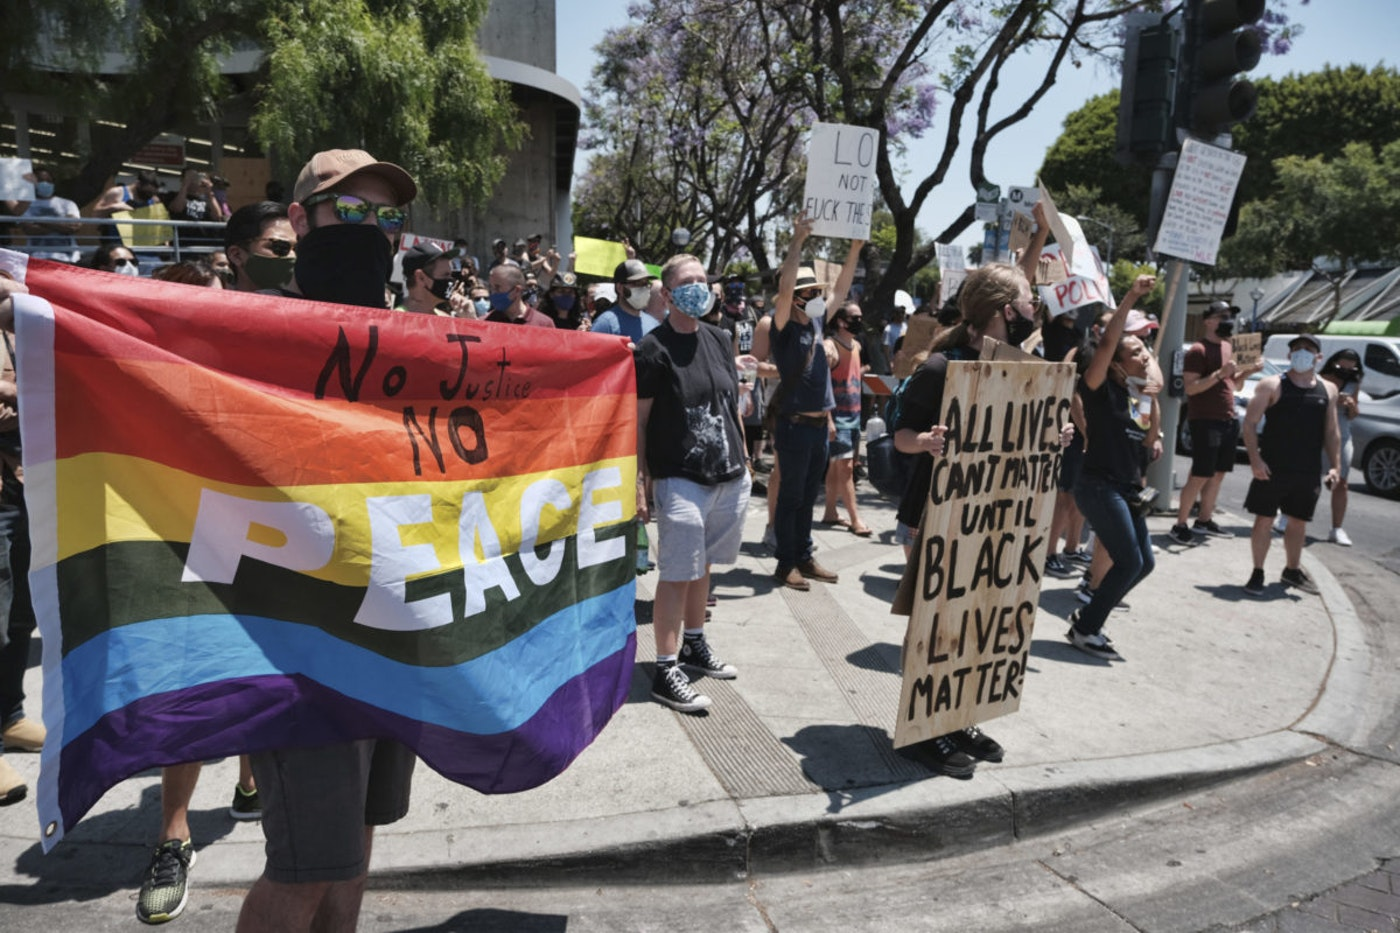 LGBTQ community members join in support with Black Lives Matter protesters holding signs and chanting slogans on an intersection in West Hollywood, Calif. on Wednesday, June 3, 2020, over the death of George Floyd, a black man who was in police custody in Minneapolis. Floyd died after being restrained by Minneapolis police officers on Memorial Day. (AP Photo/Richard Vogel)